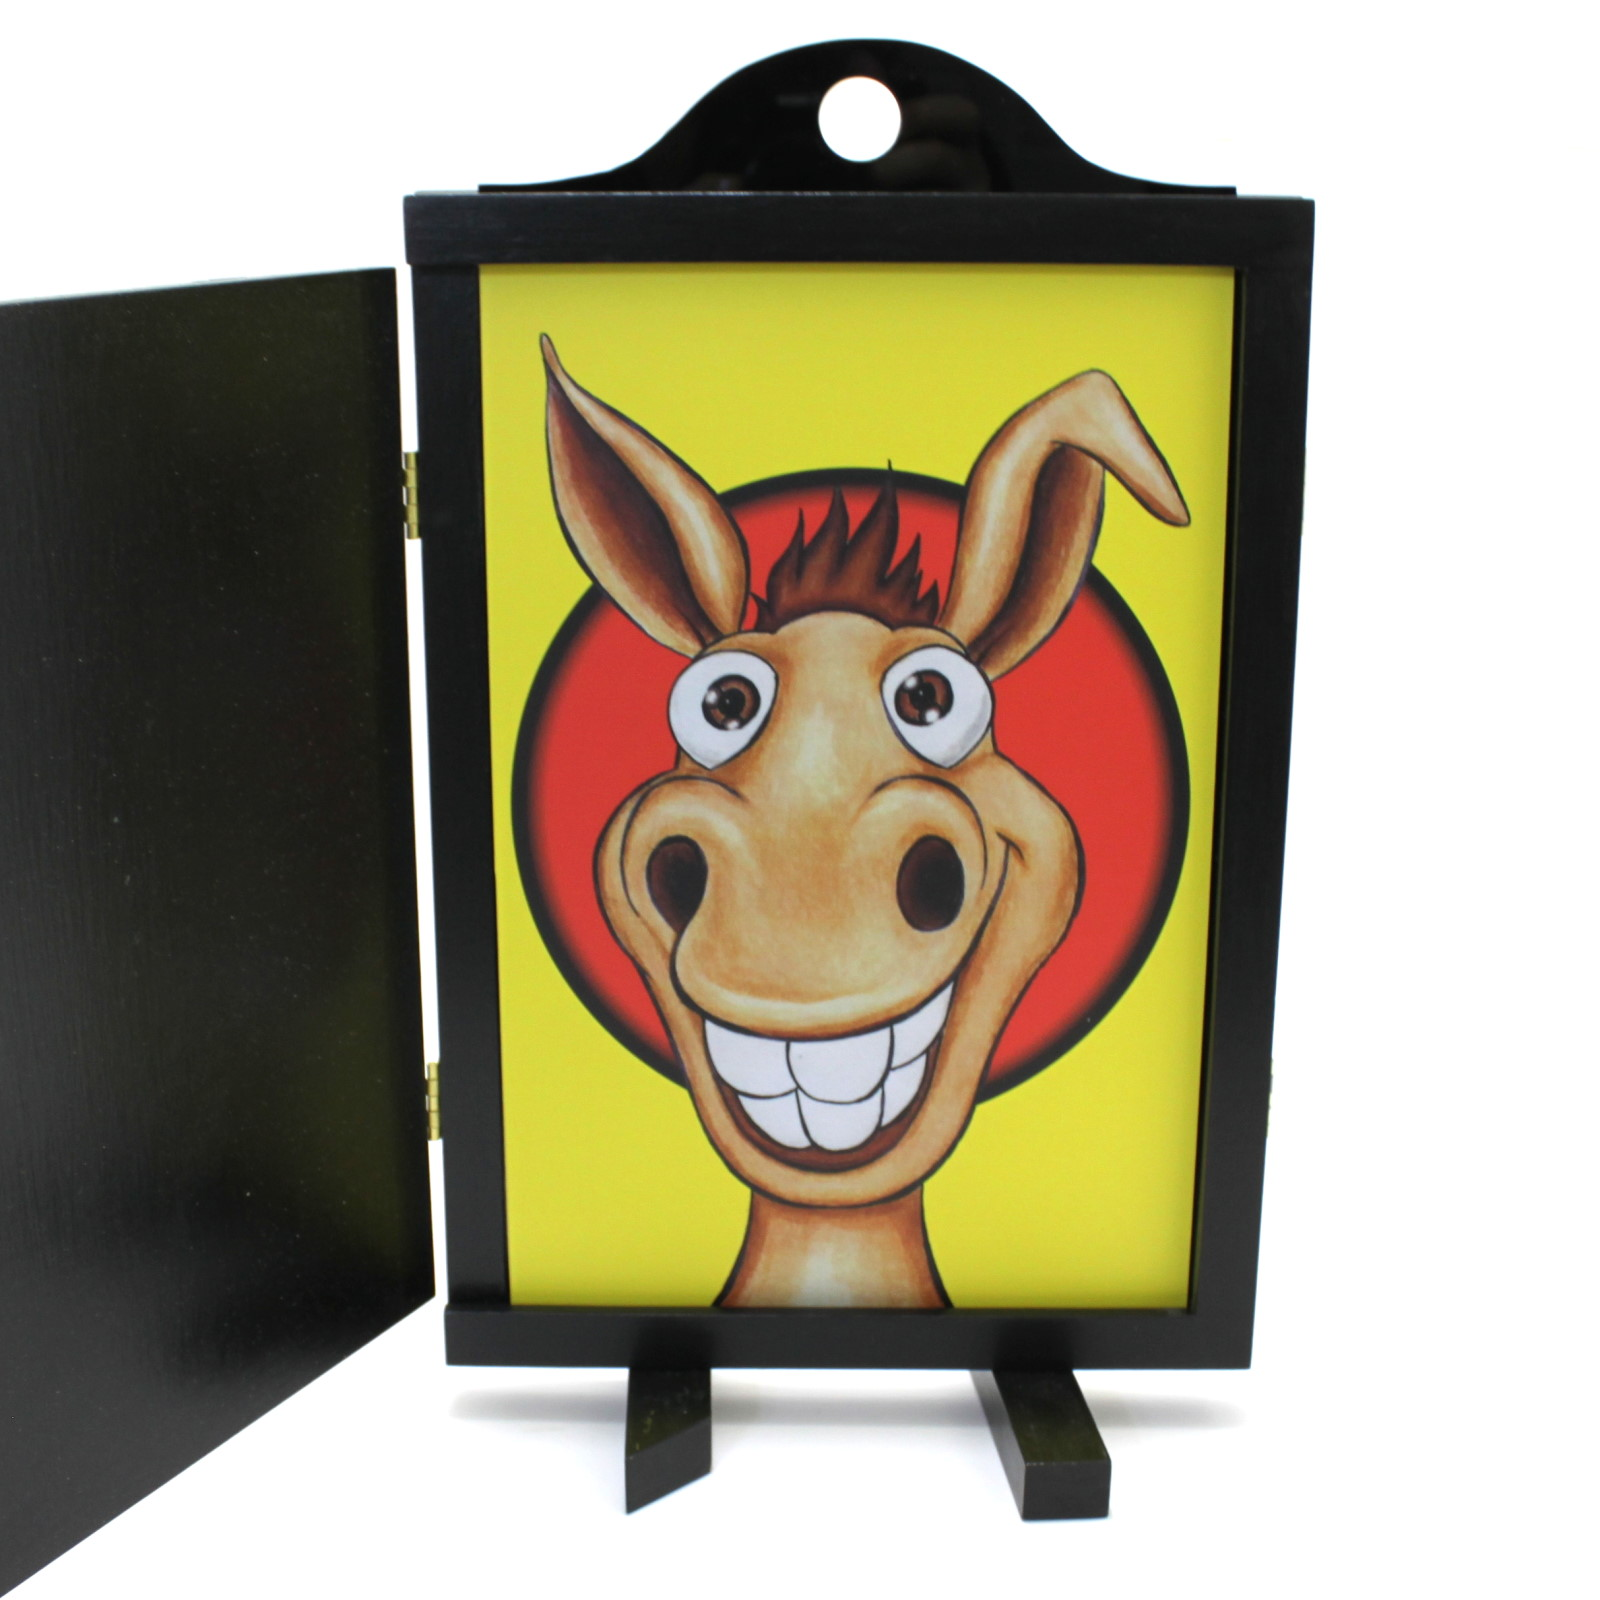 Scared Silly - Donny The Donkey by Viking Mfg.